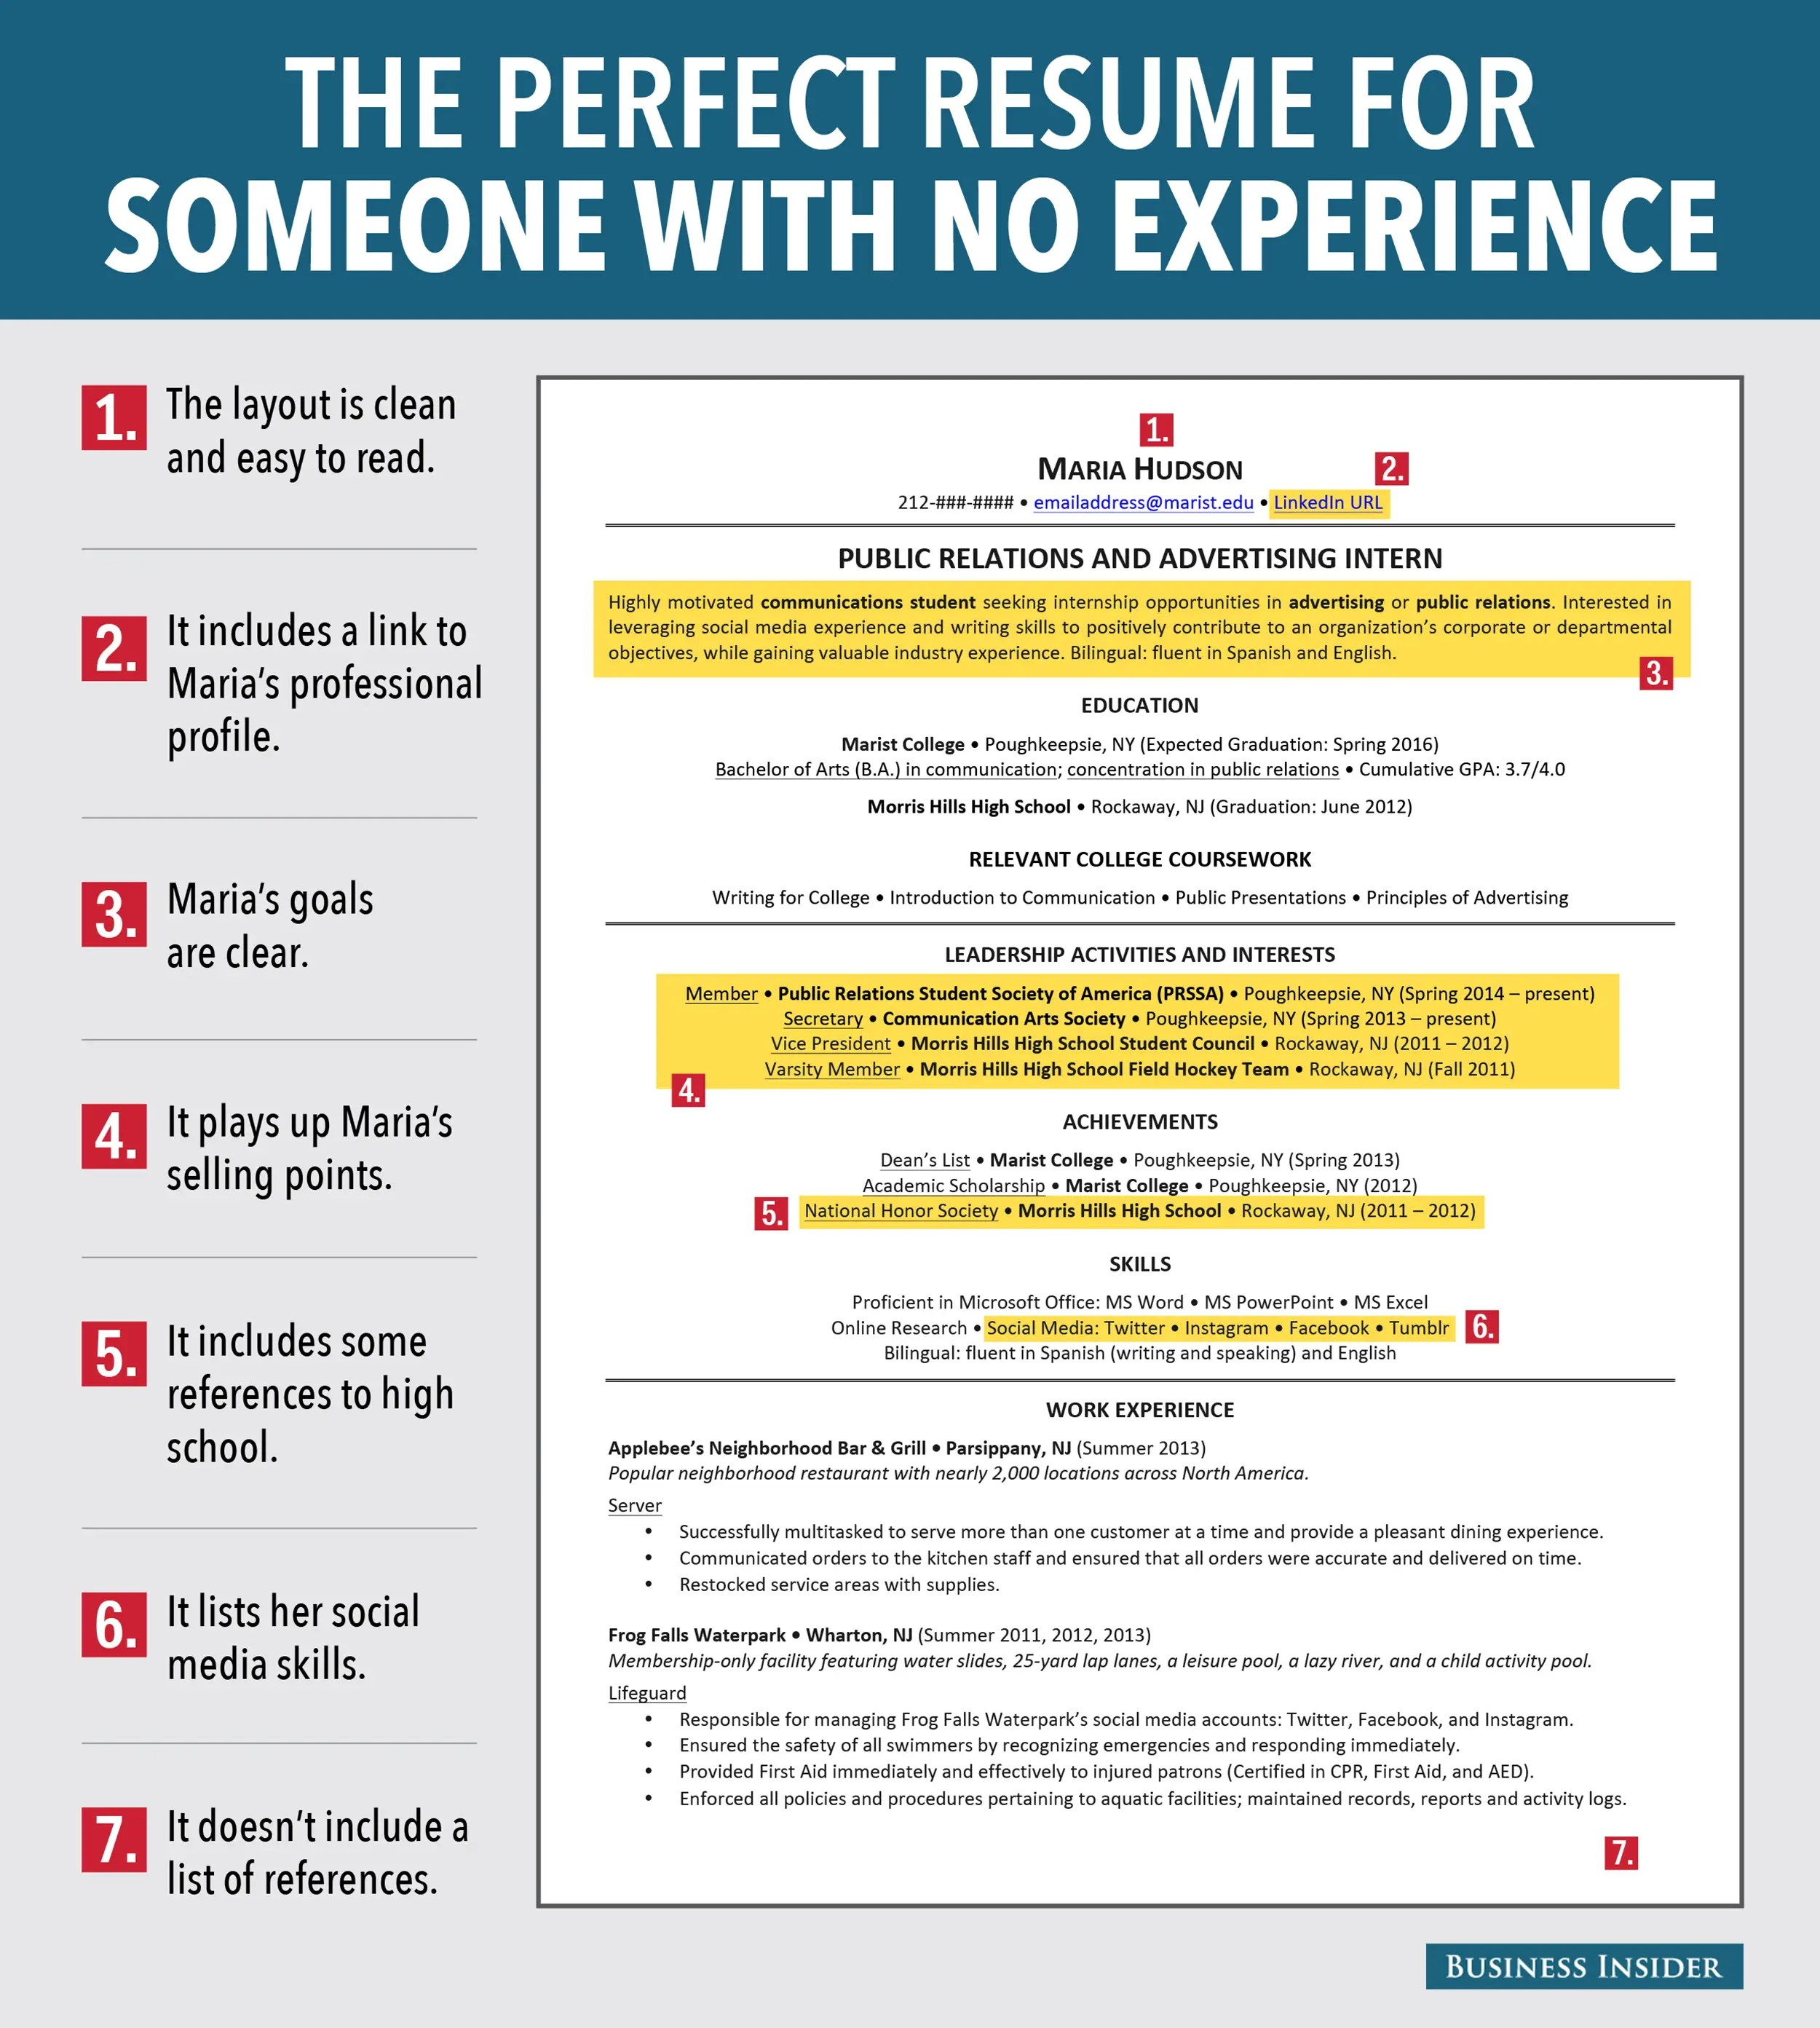 Experience Resume 7 Reasons This Is An Excellent Resume For Someone With No